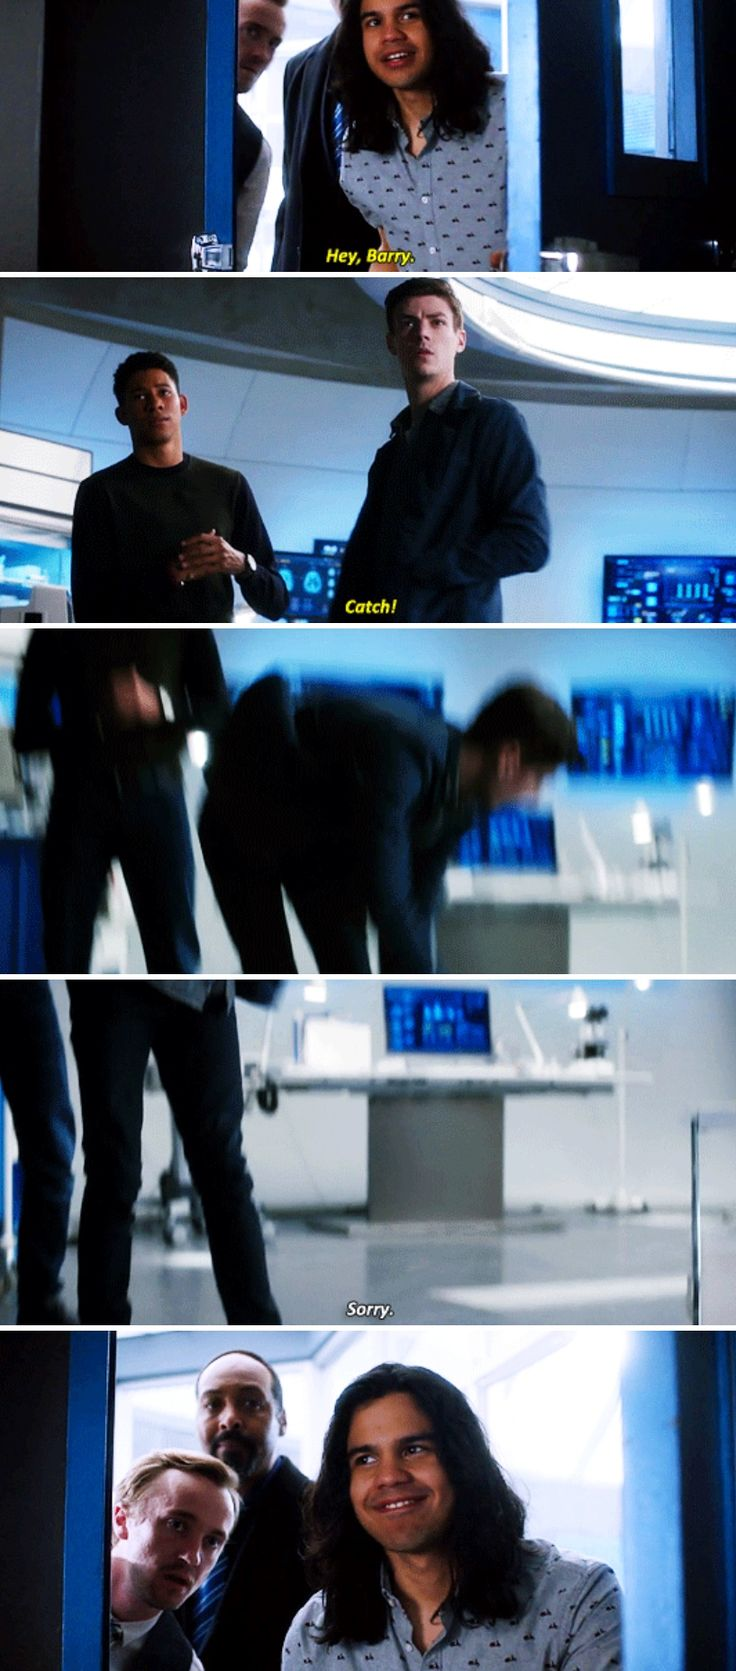 """Hey, Barry. Catch!"" - Cisco, Julian, Joe, Wally and amnesic Barry #TheFlash"